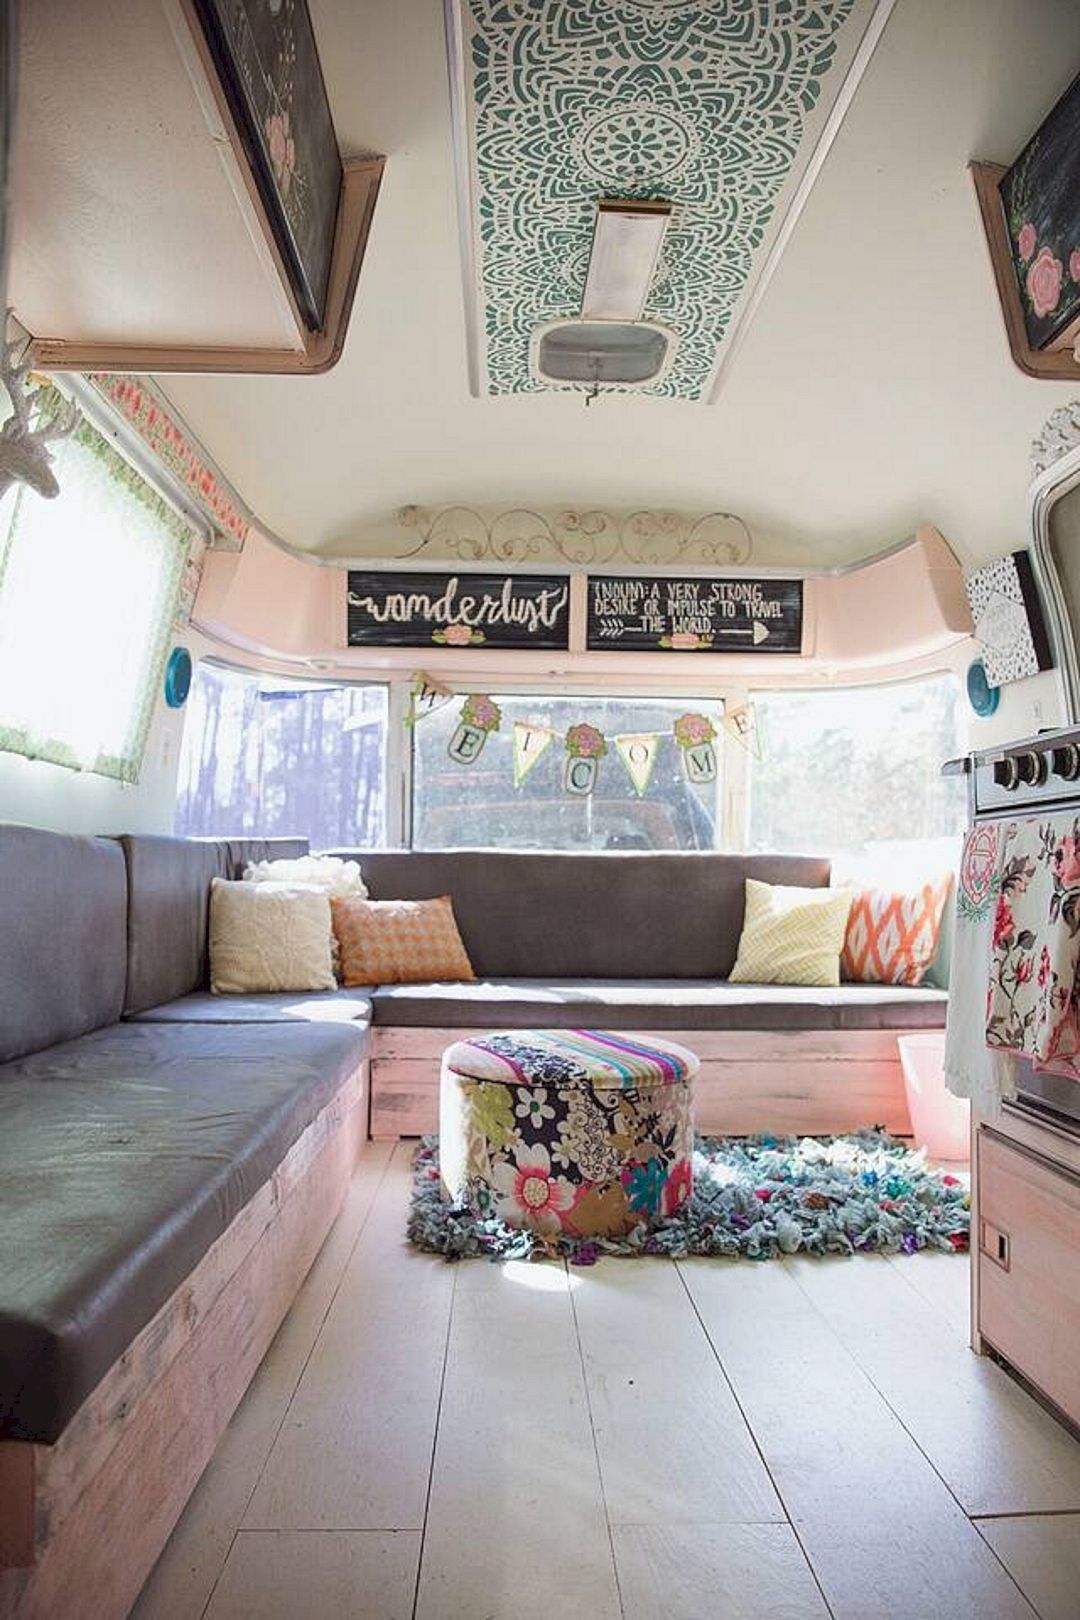 45 Top Camper Decorating Ideas   Outdoor Living   Pinterest   Rv     45 Top Camper Decorating Ideas https   freshouz com 45 top camper decorating  ideas